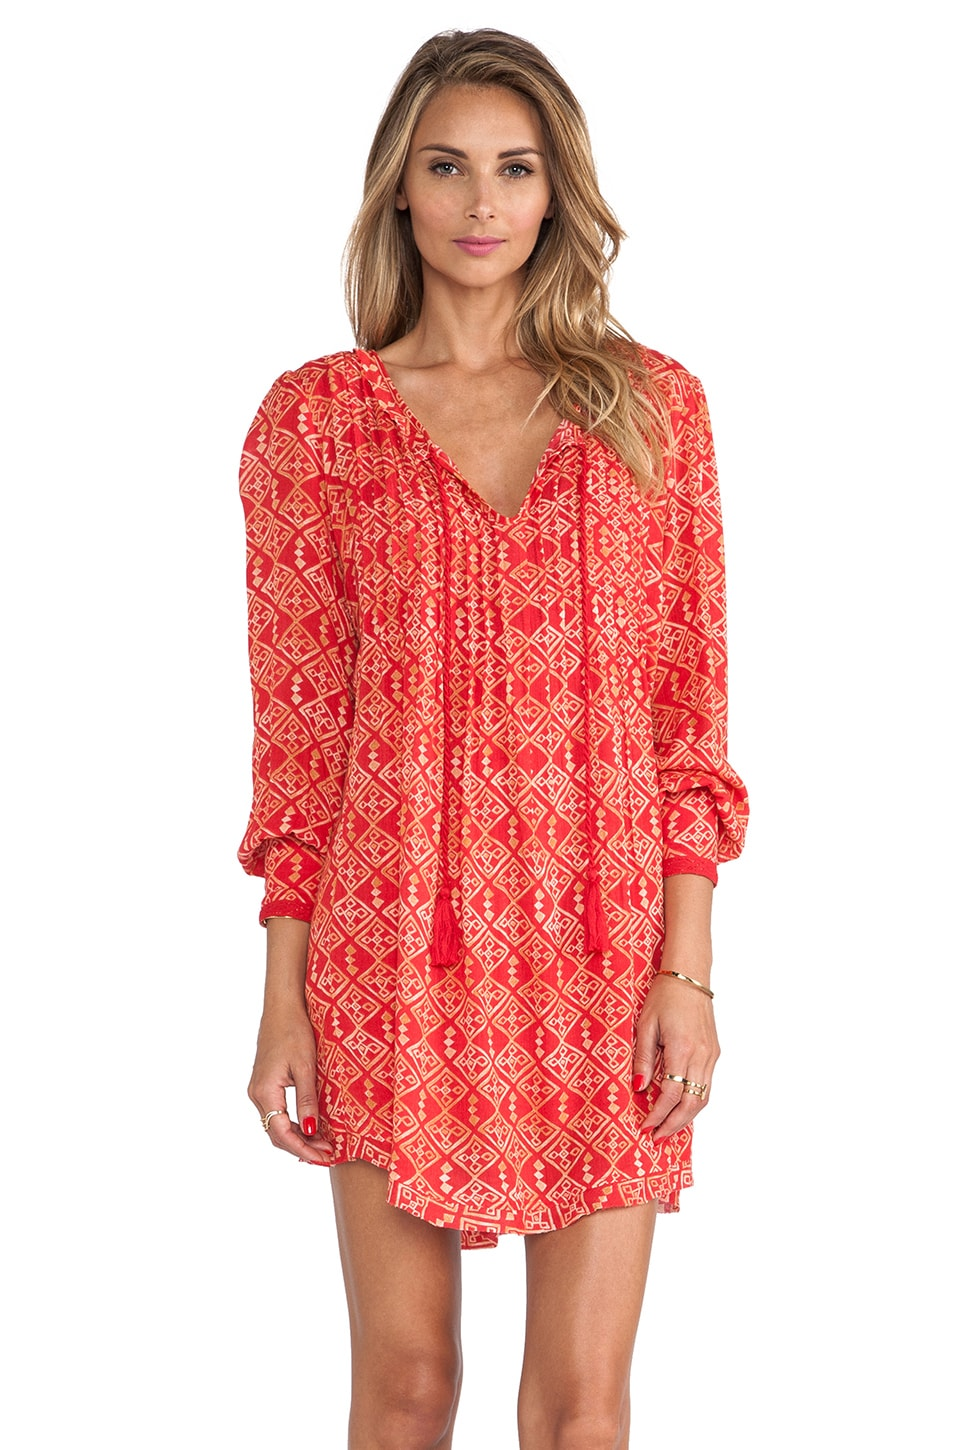 Free People Marlow Dress in Red Combo